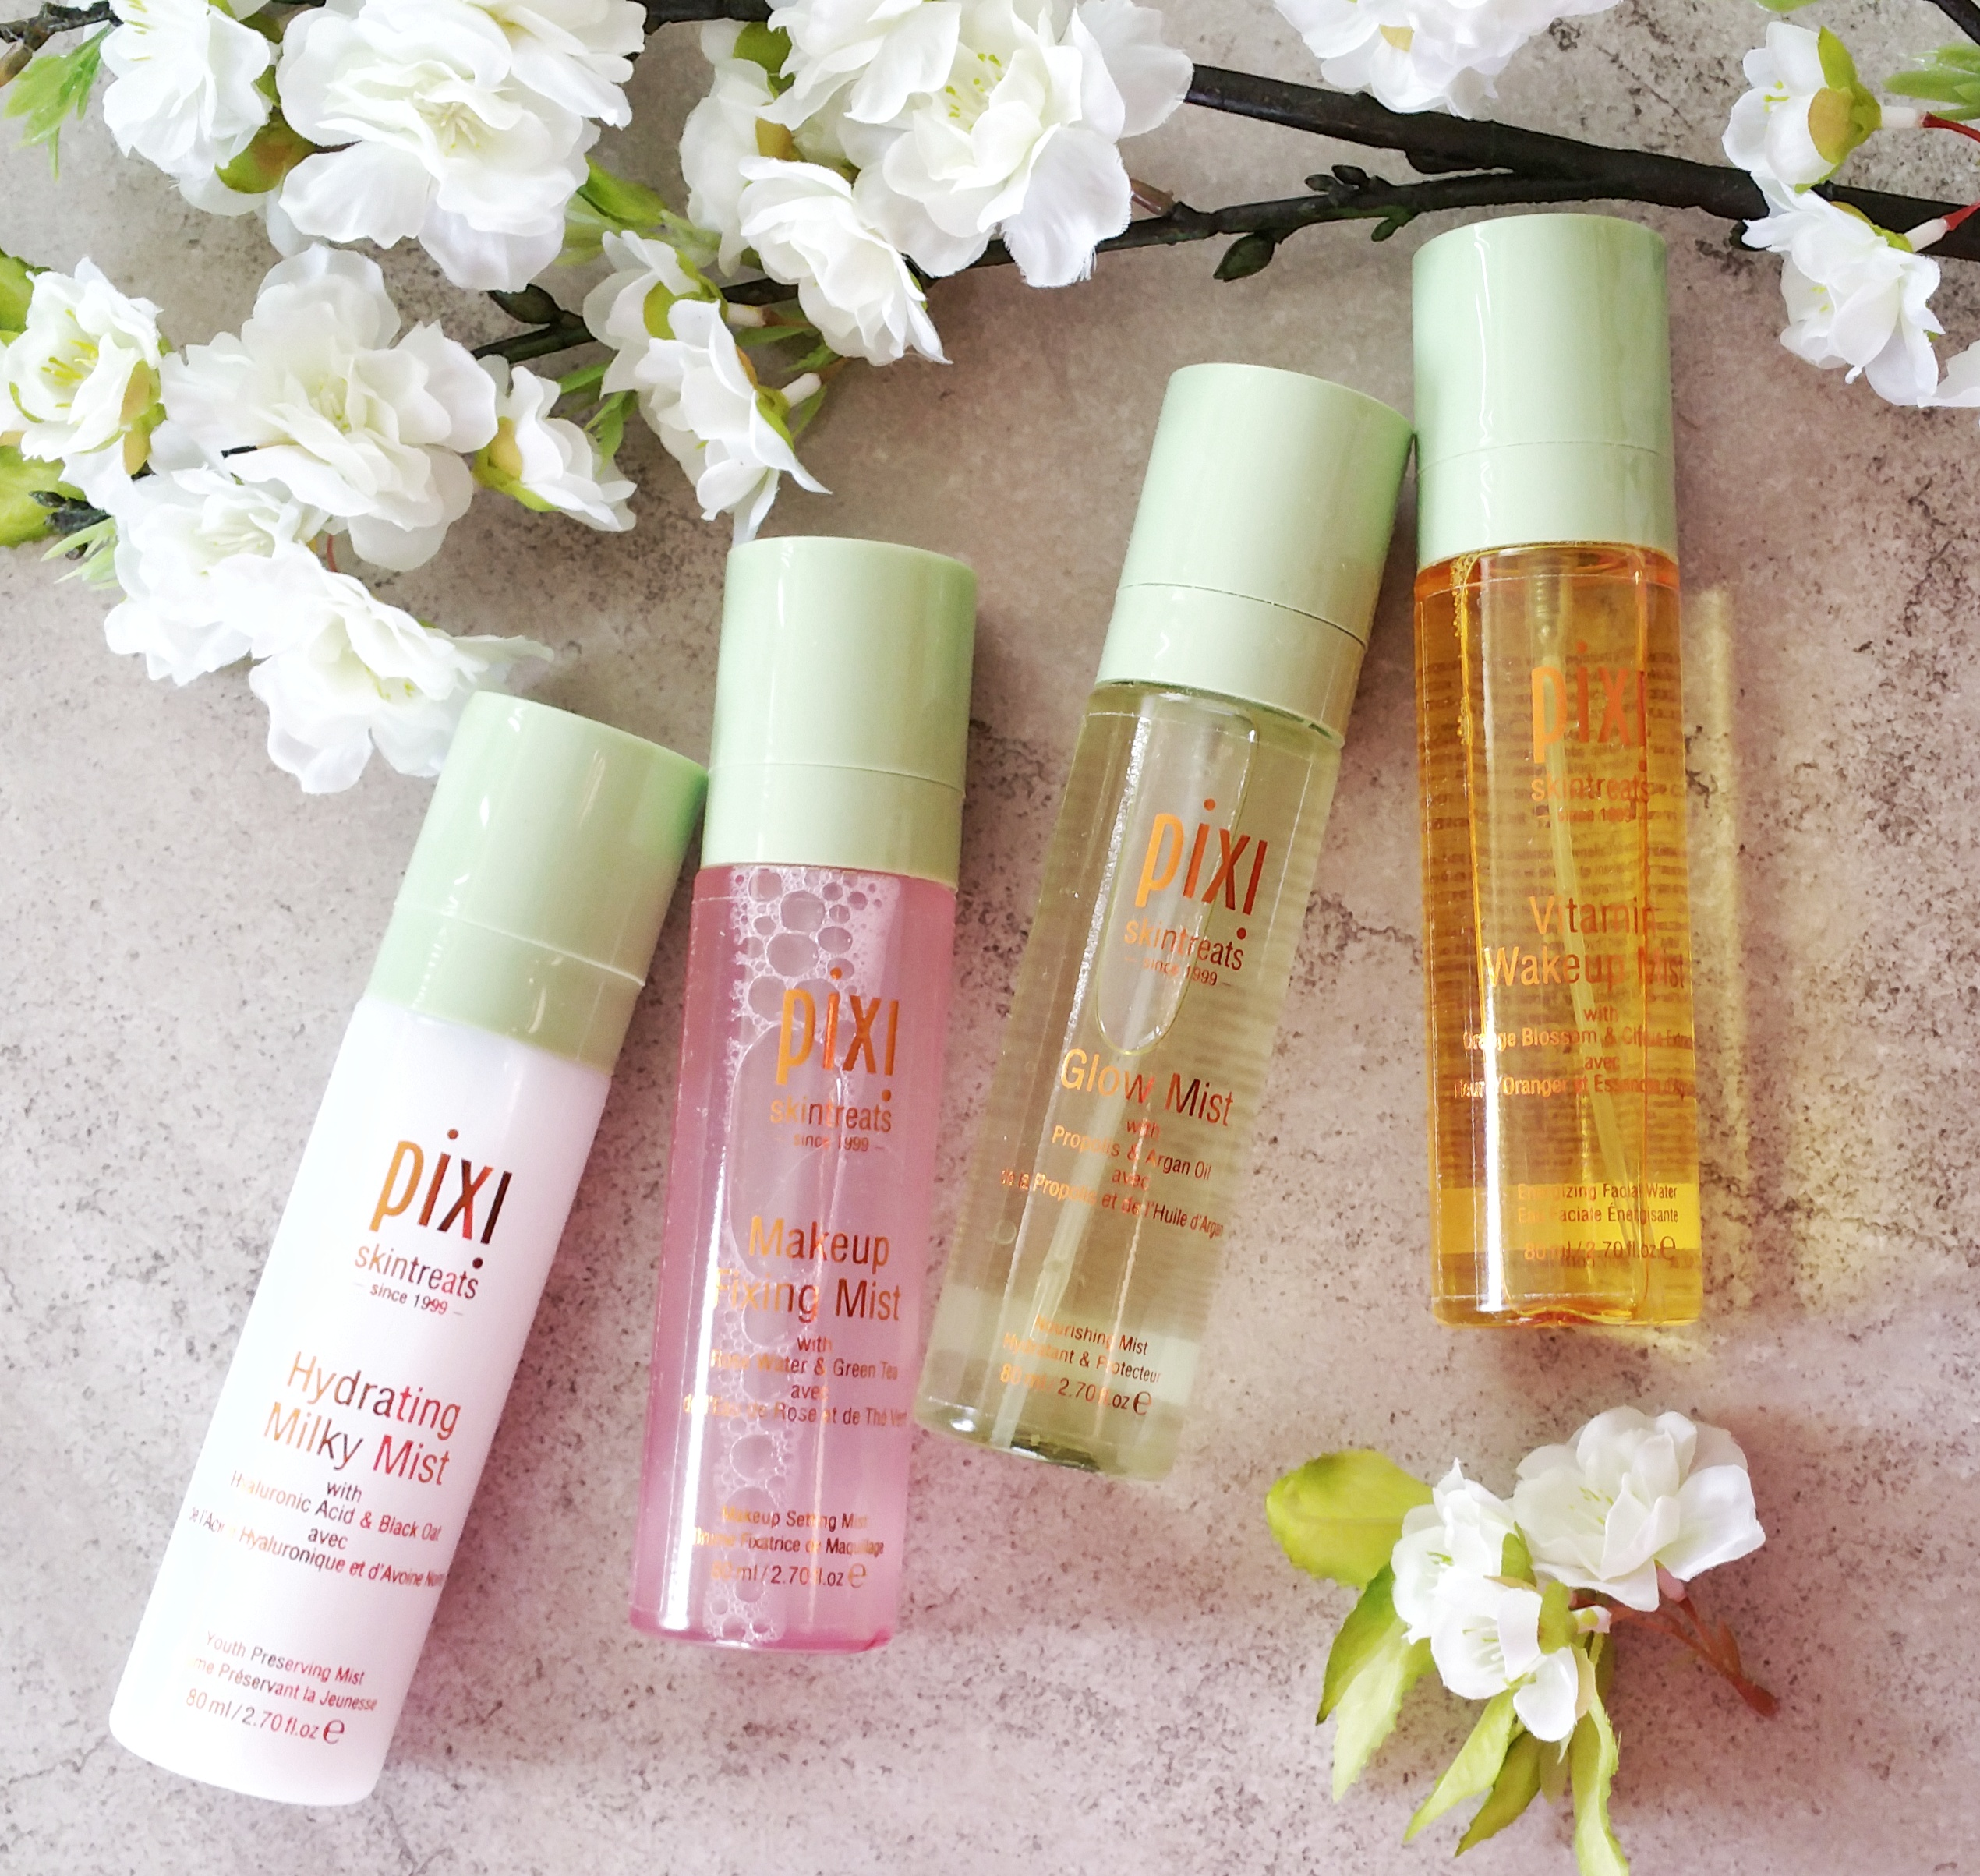 pixi, pixi beauty, pixi beauty mists, skin treats, beauty mists, setting spray, makeup, skin care, makeup setting spray, vitamin c spray, drugstore skin care, vitamin wakeup mist, hydrating milky mist, glow mist, makeup fixing mist, spray mist, makeup mist, skin care mist,